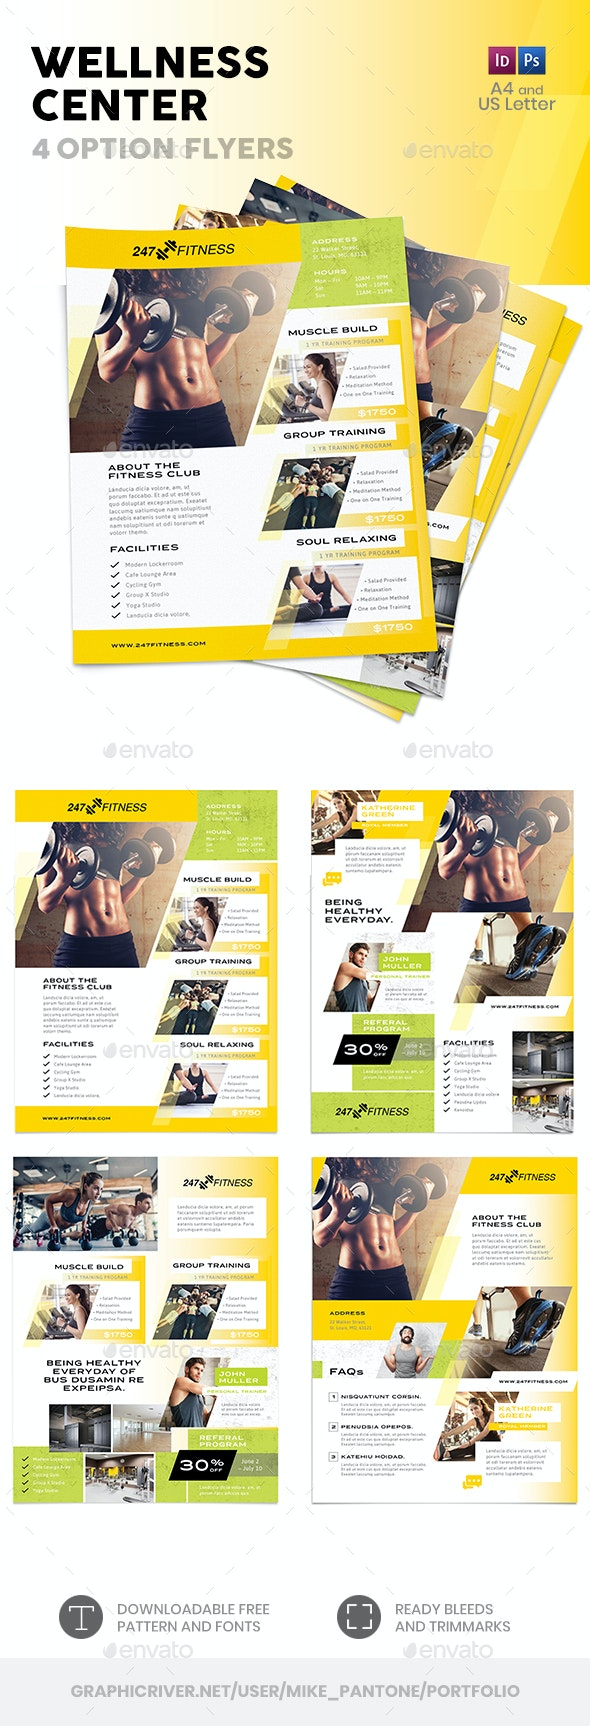 Wellness Center Flyers 3 – 4 Options - Commerce Flyers